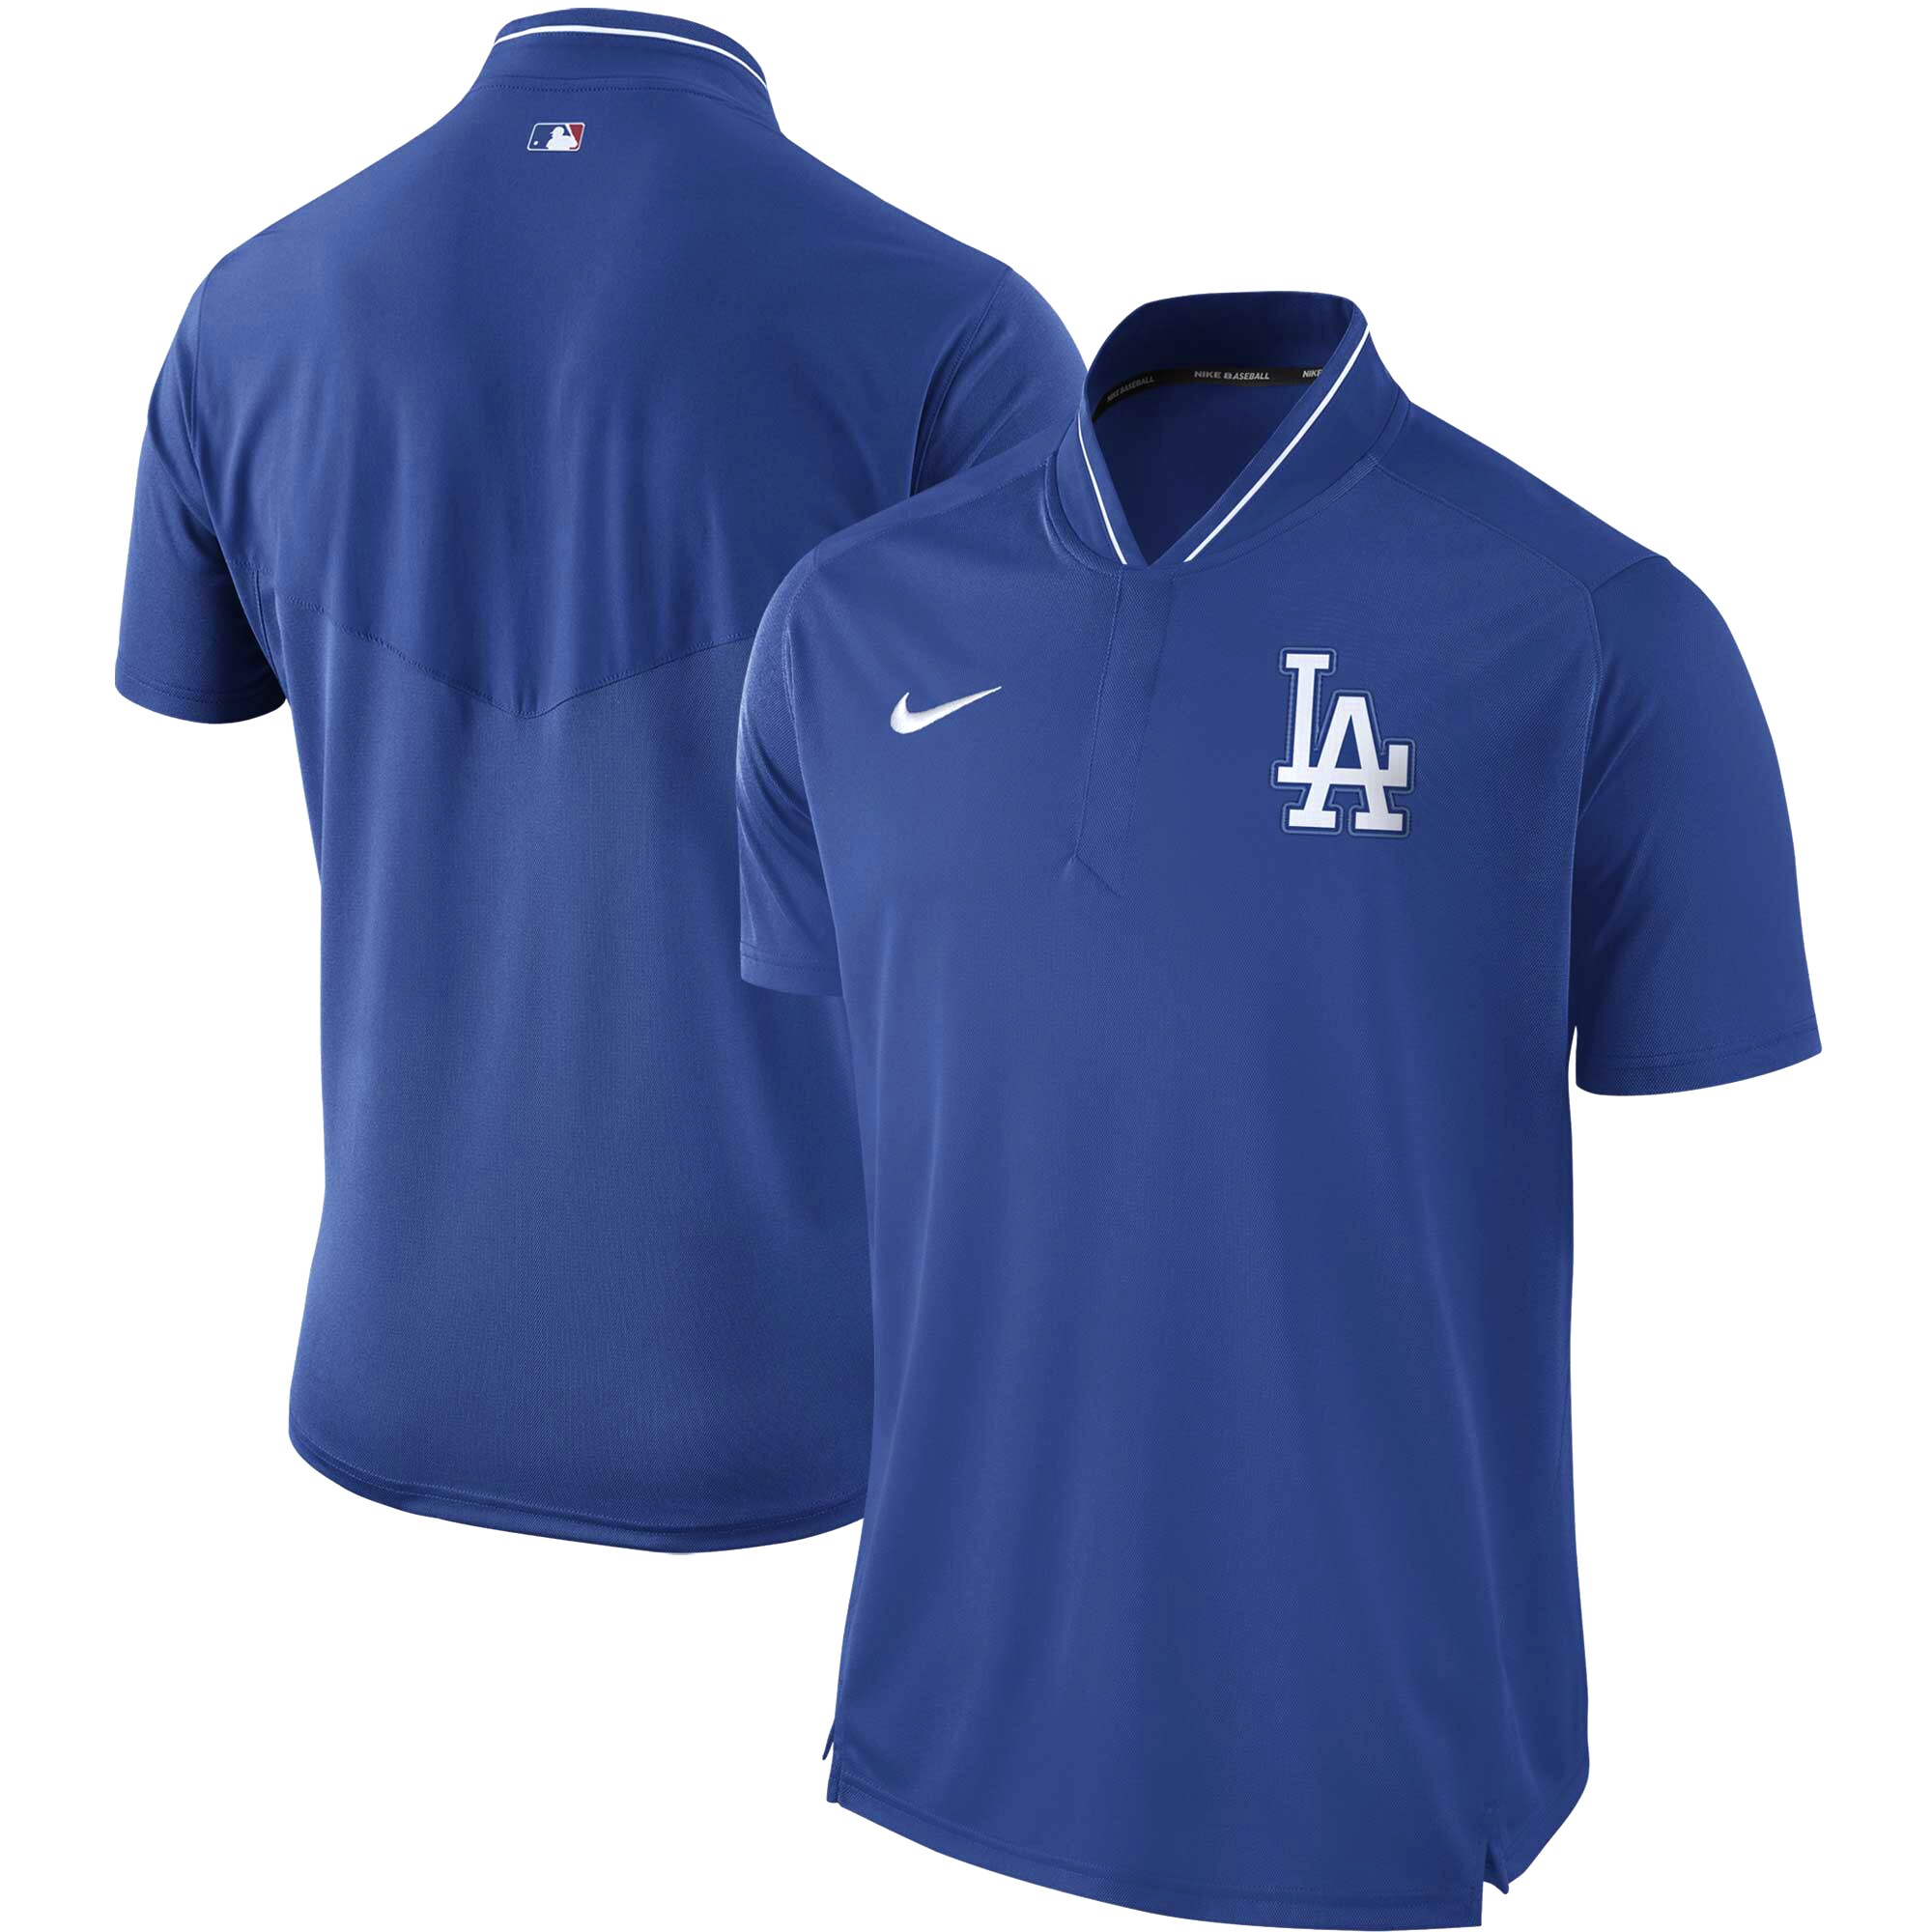 Los Angeles Dodgers Nike Authentic Collection Elite Performance Polo - Royal